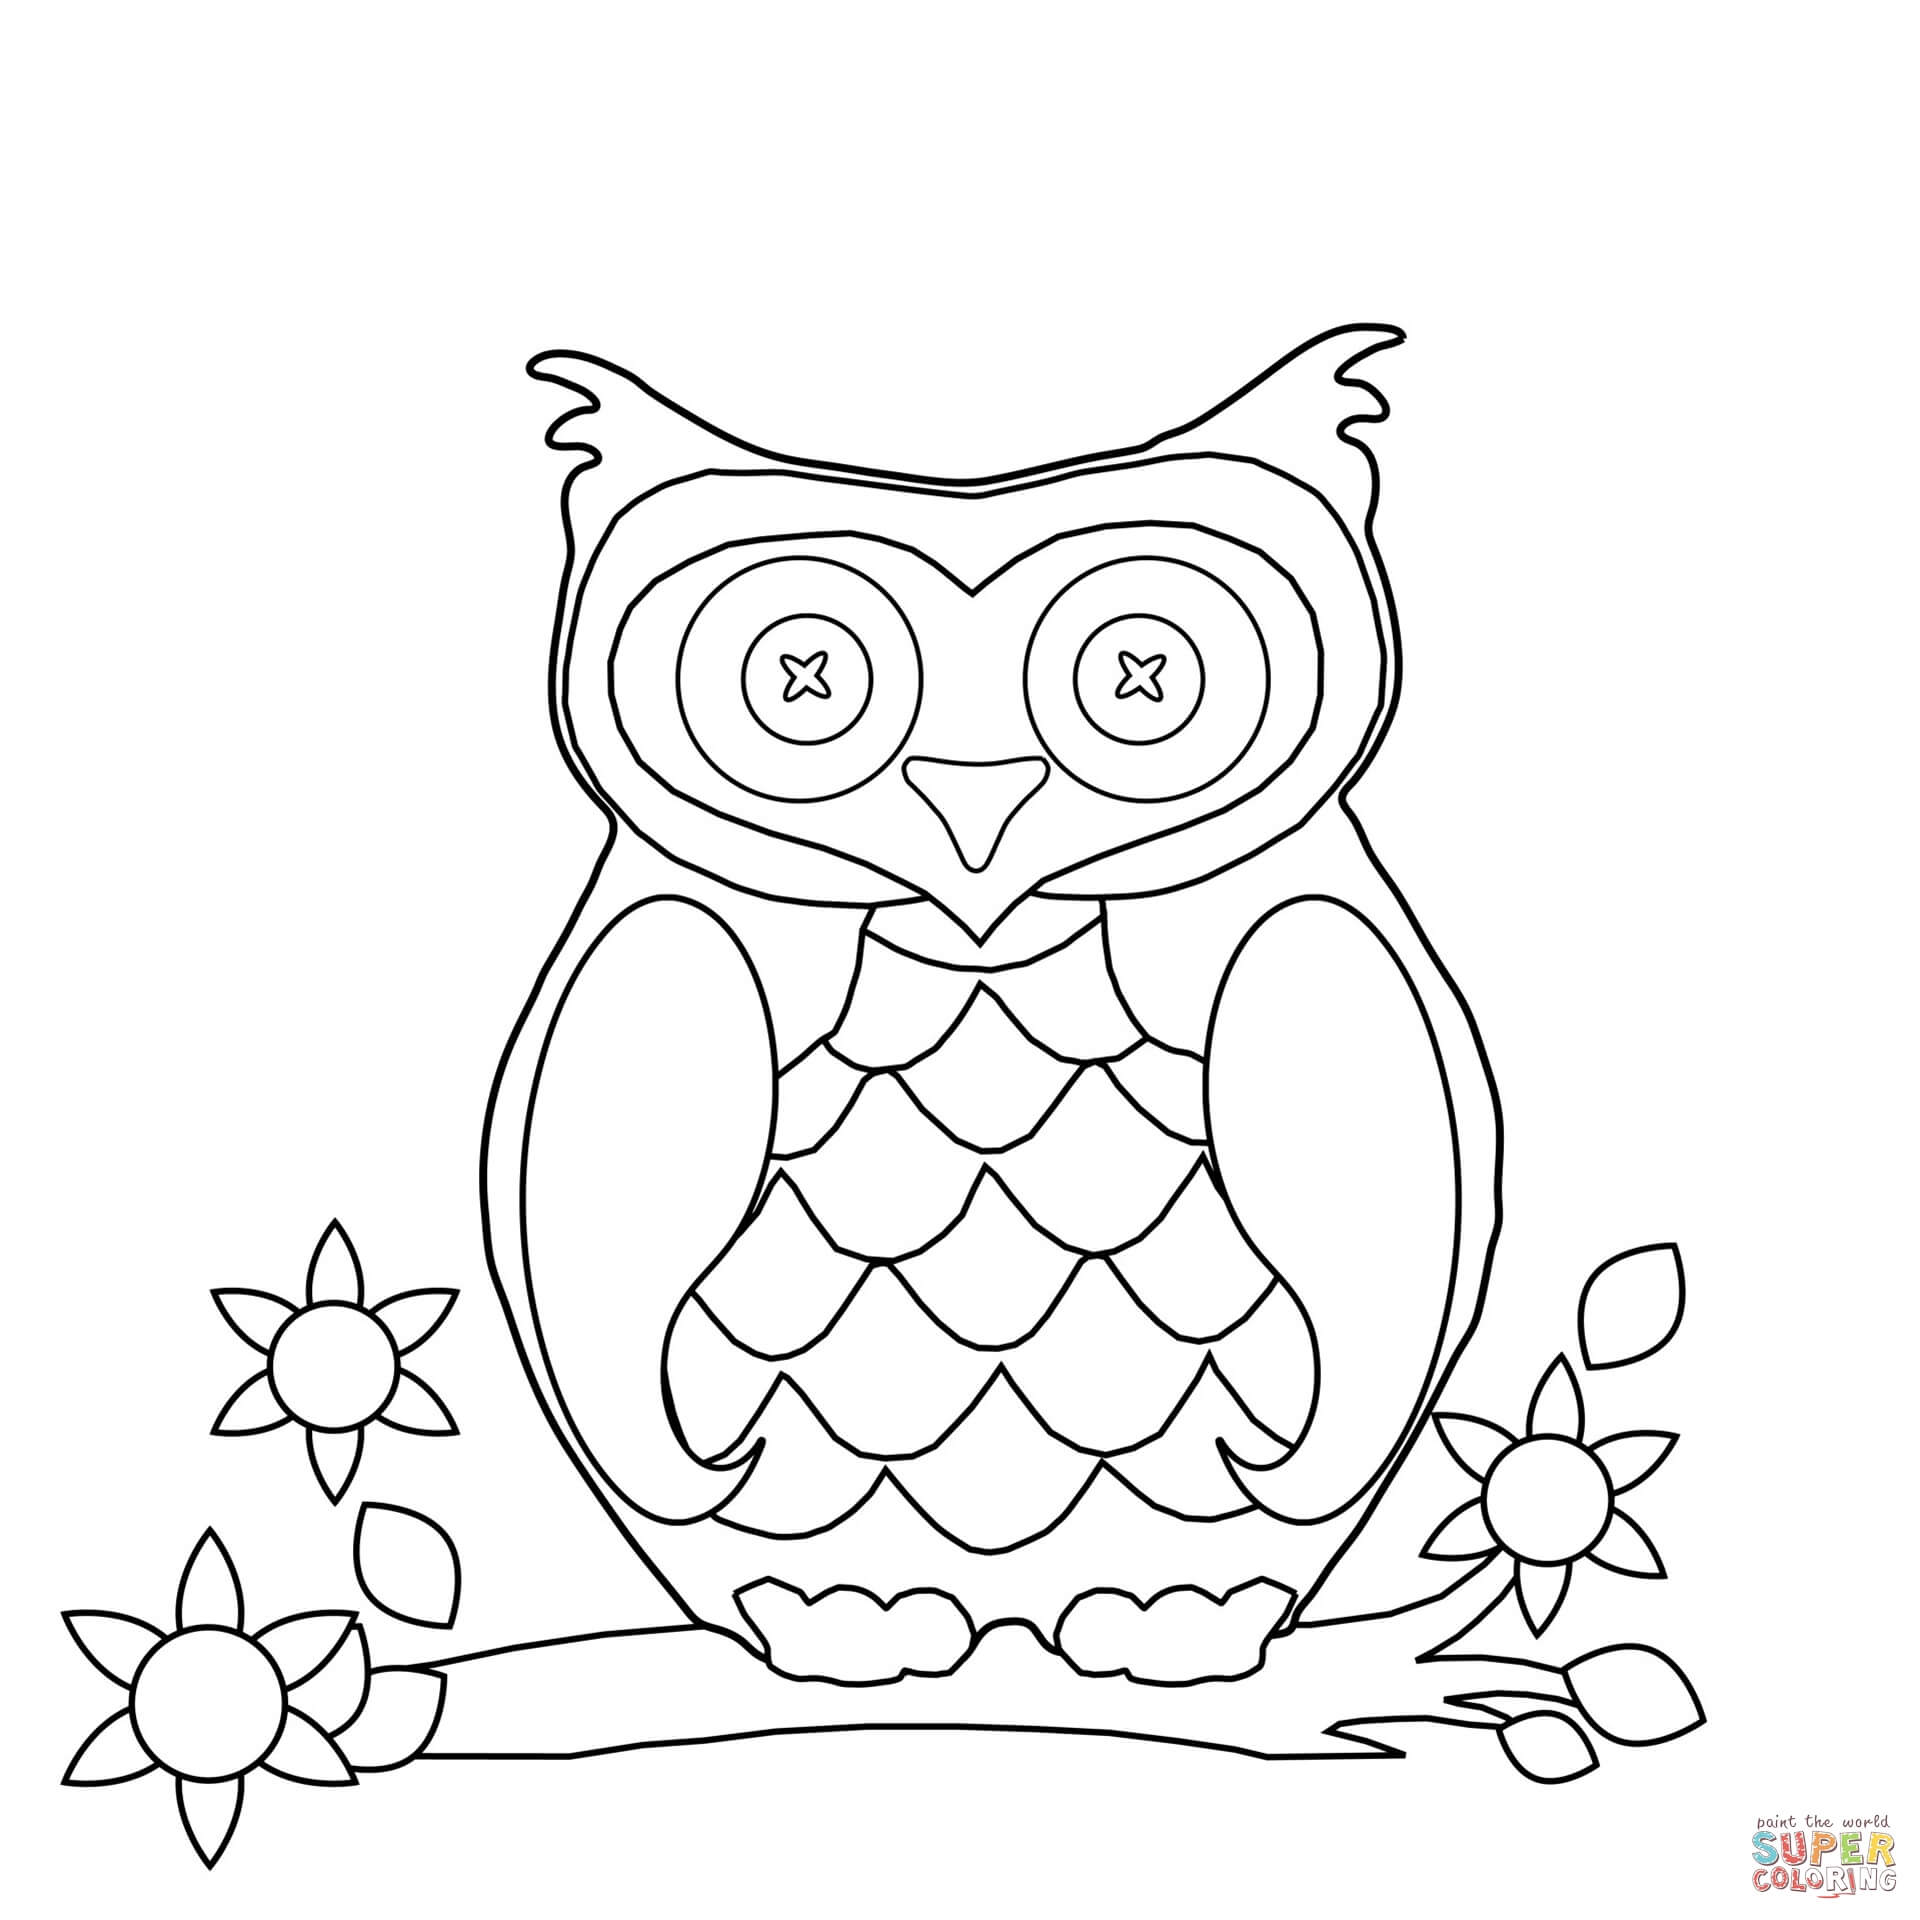 1920x1920 Cartoon Owl Coloring Page Free Printable Coloring Pages